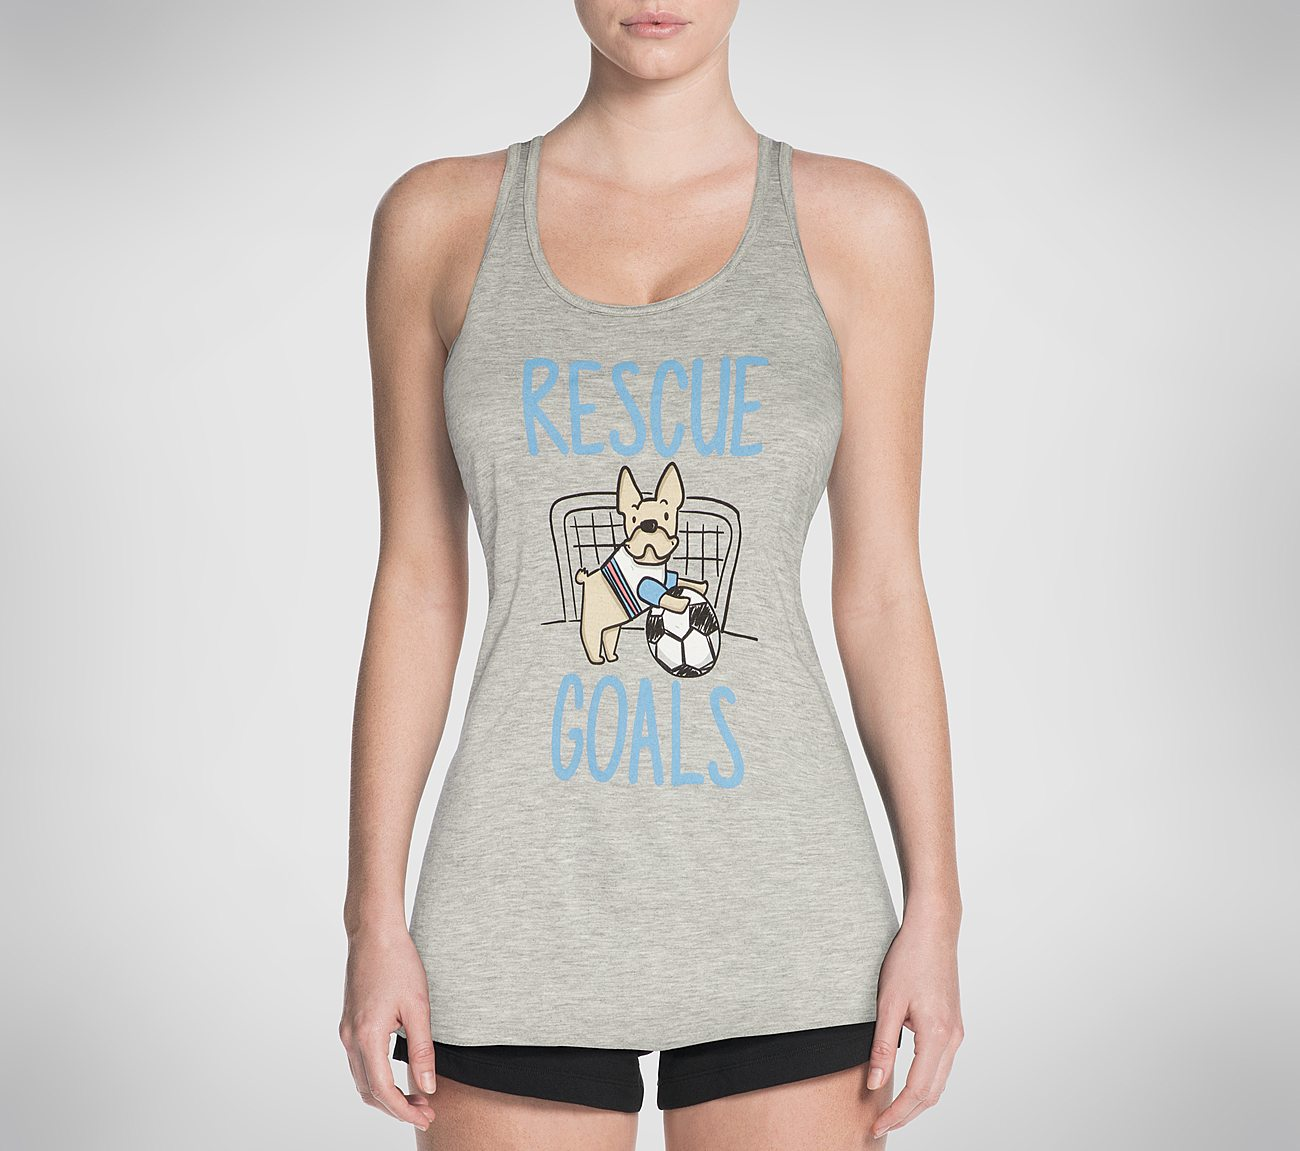 BOBS Rescue Goals Tank Top